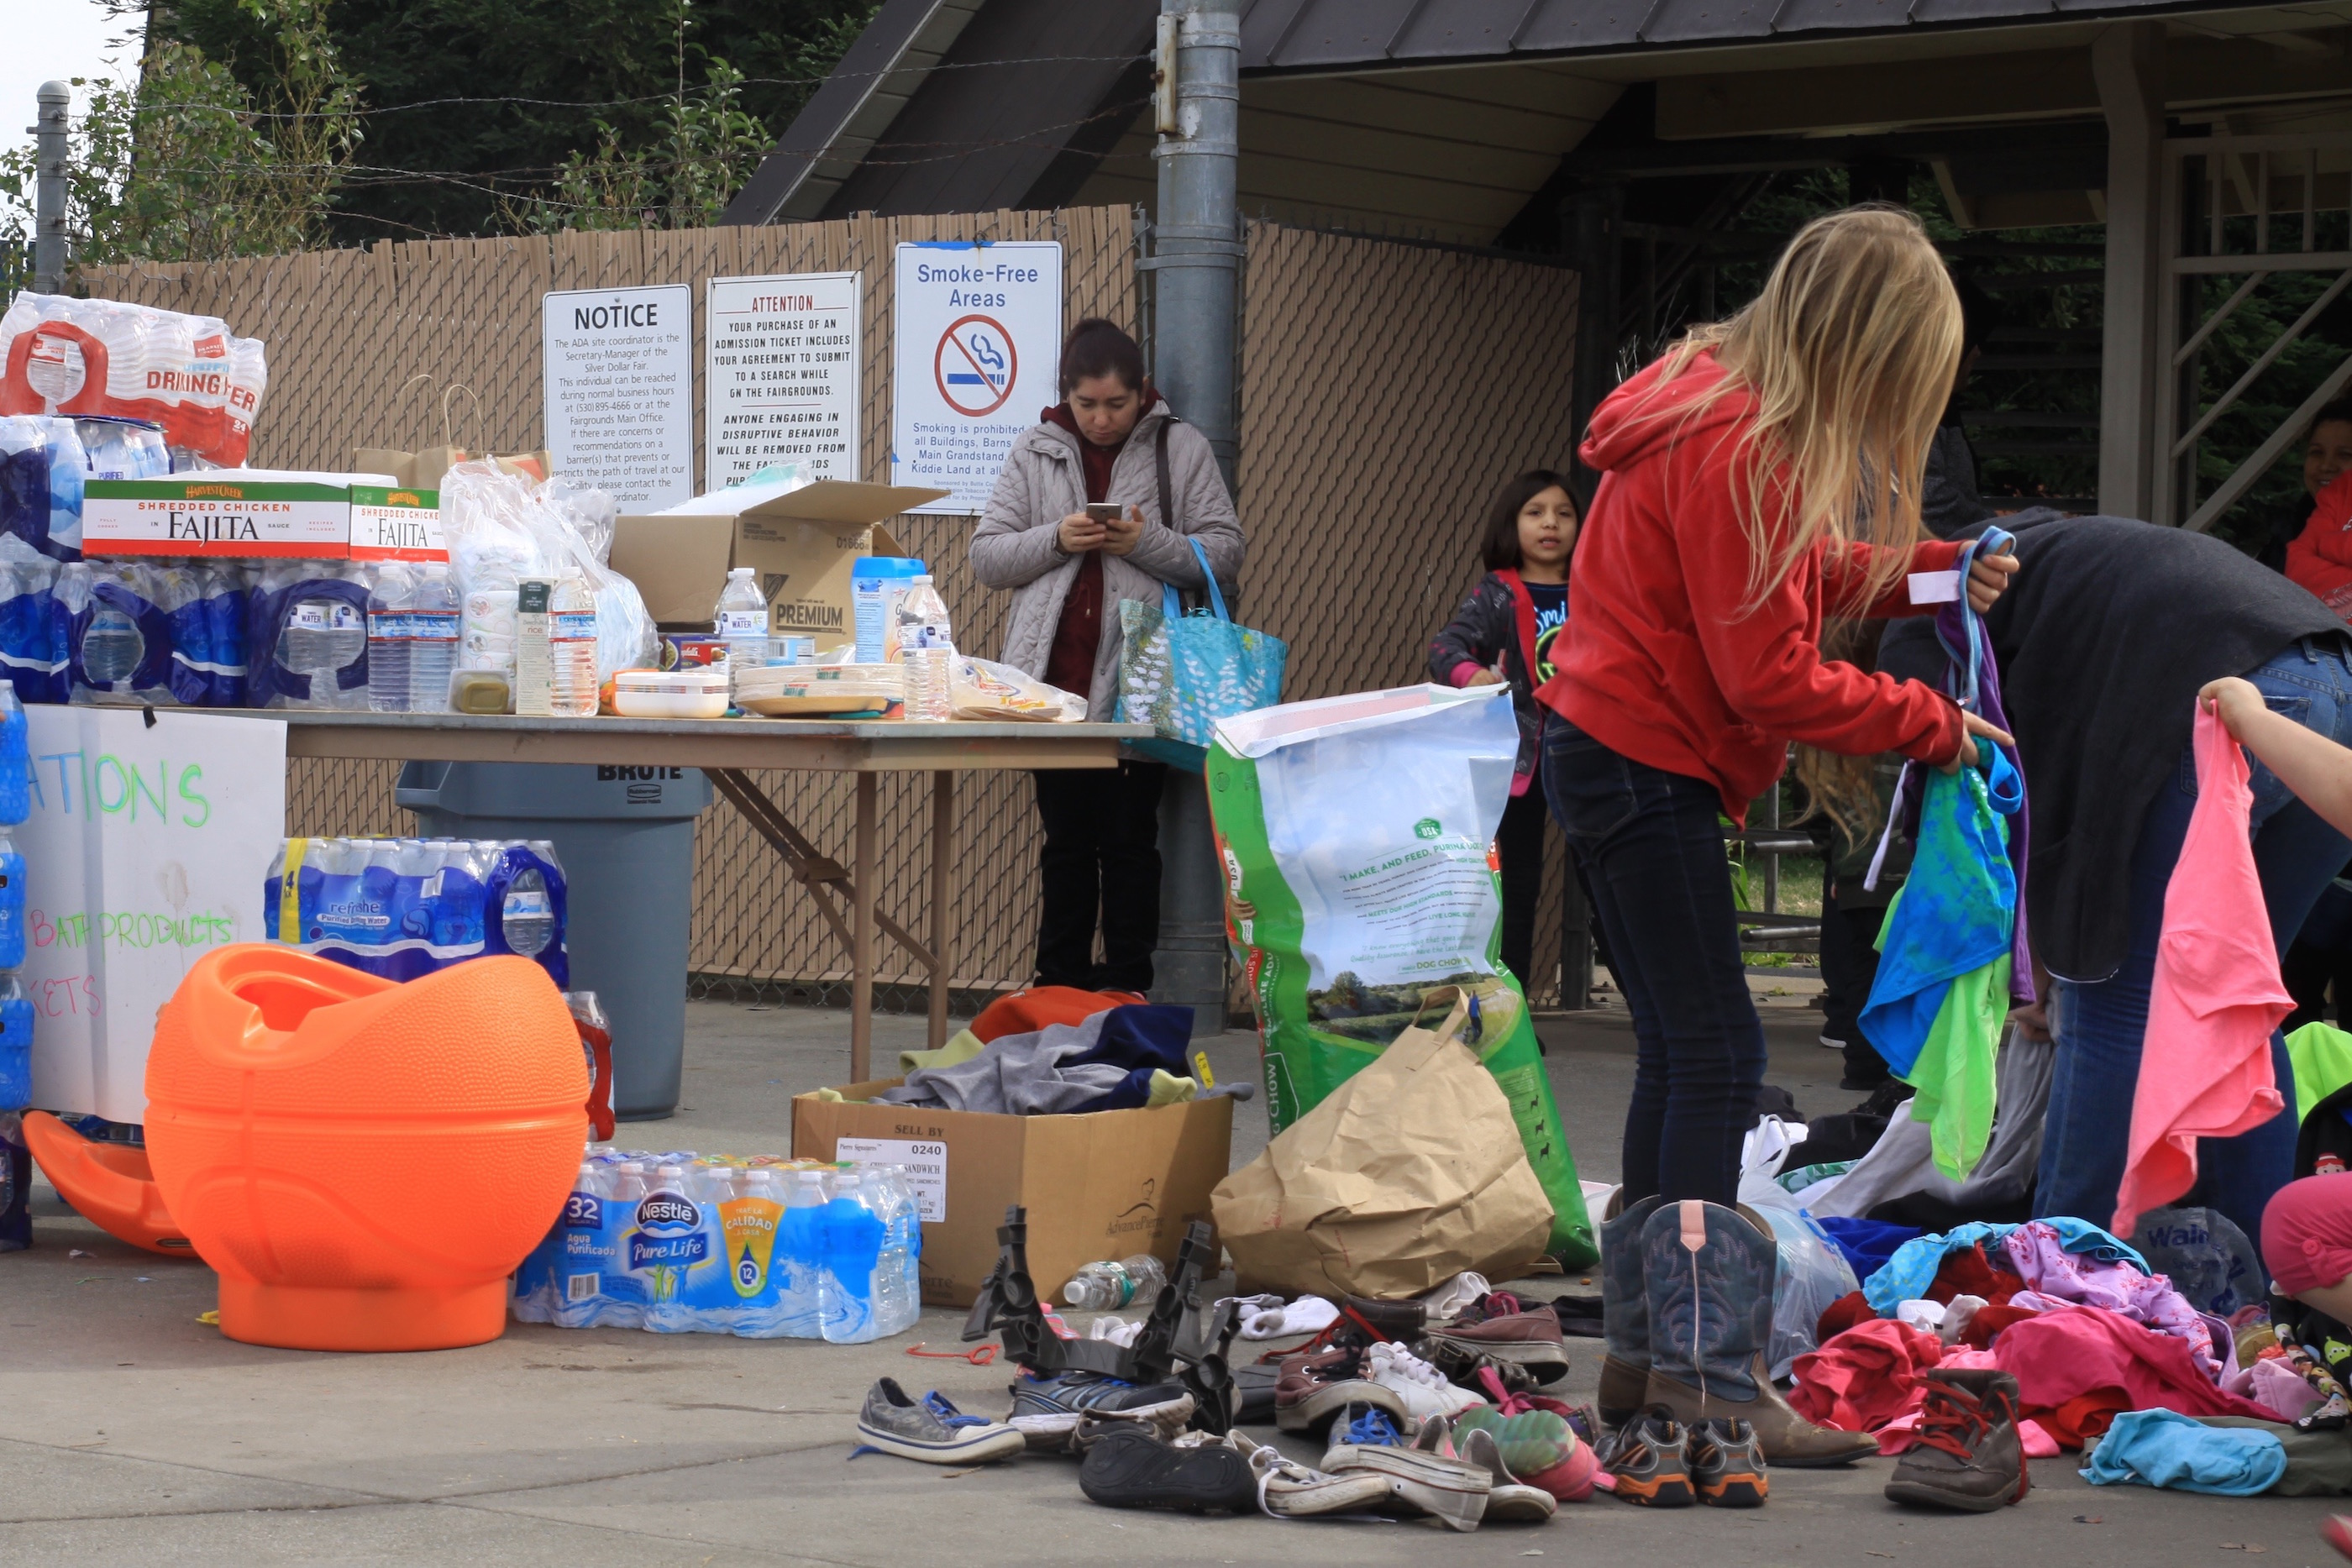 Many evacuees received donations from locals including clothing, shoes, and water. Photo credit: Miguel Orozco